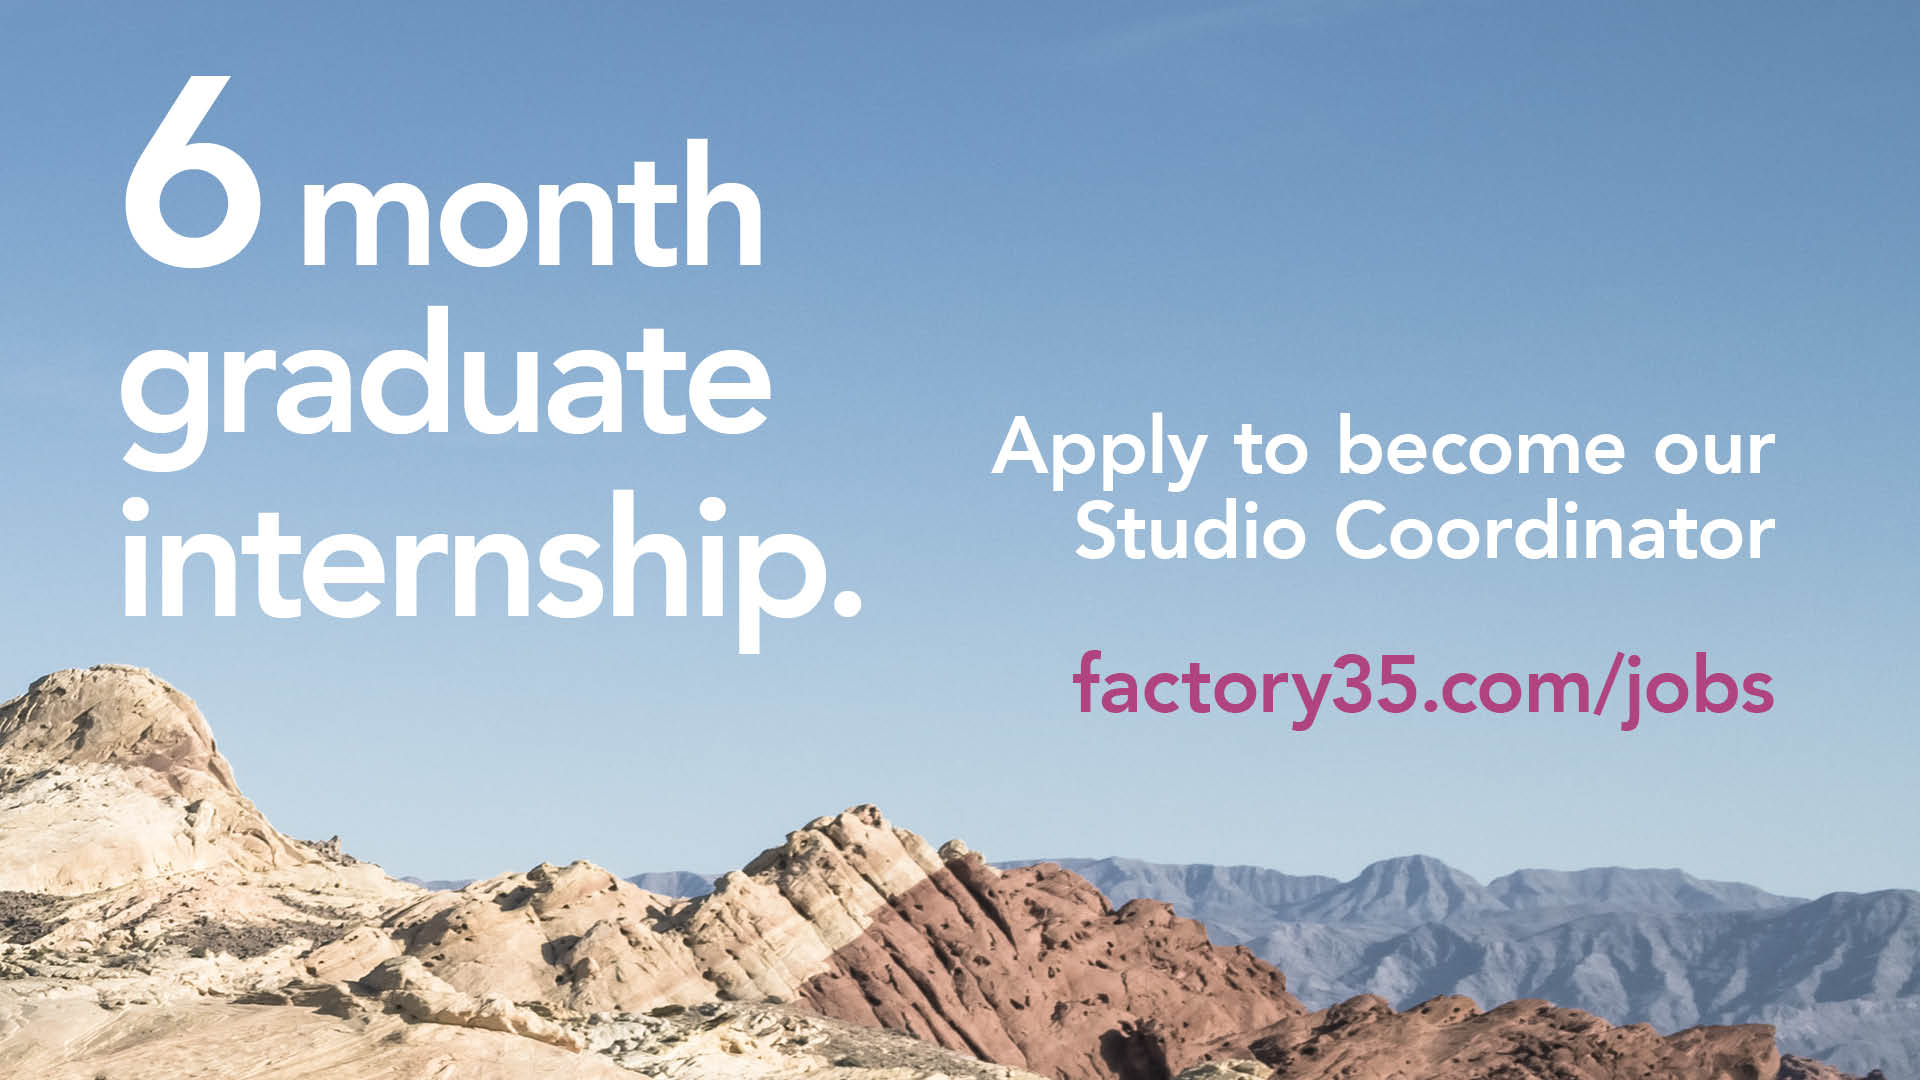 Opportunities in Ouseburn: Graduate Internship at Factory 35